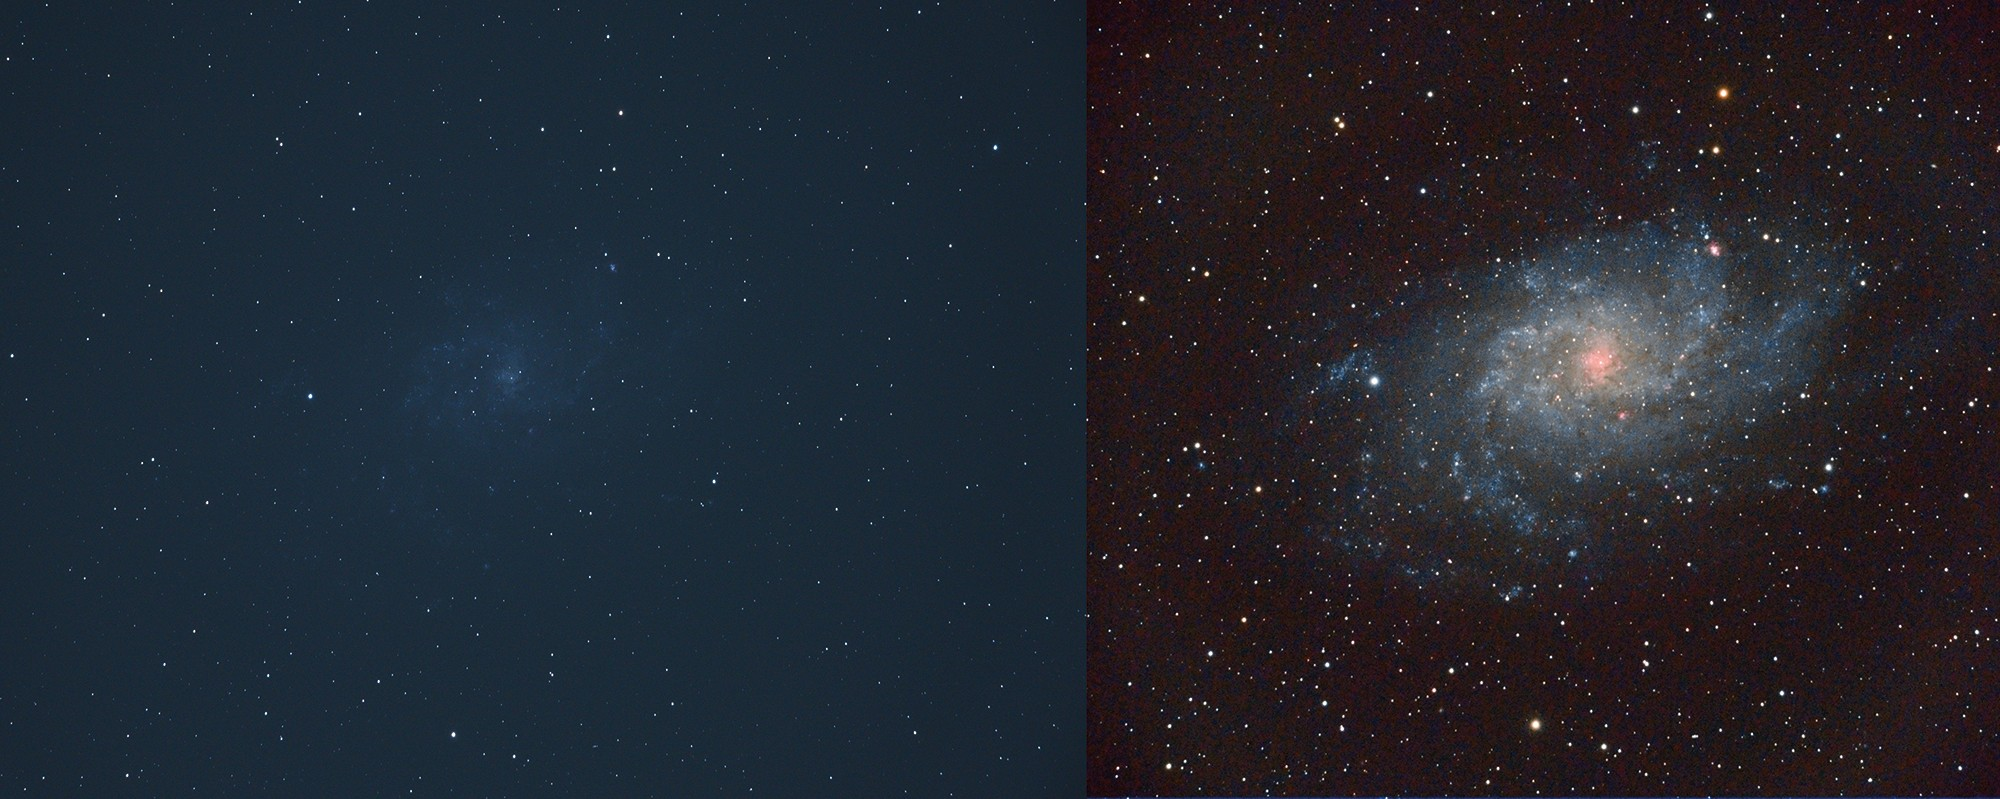 Left: a single frame of the Triangulum Galaxy, M33, before any editing; right: the same galaxy after a number of frames have been stacked. Credit: Dave Eagle